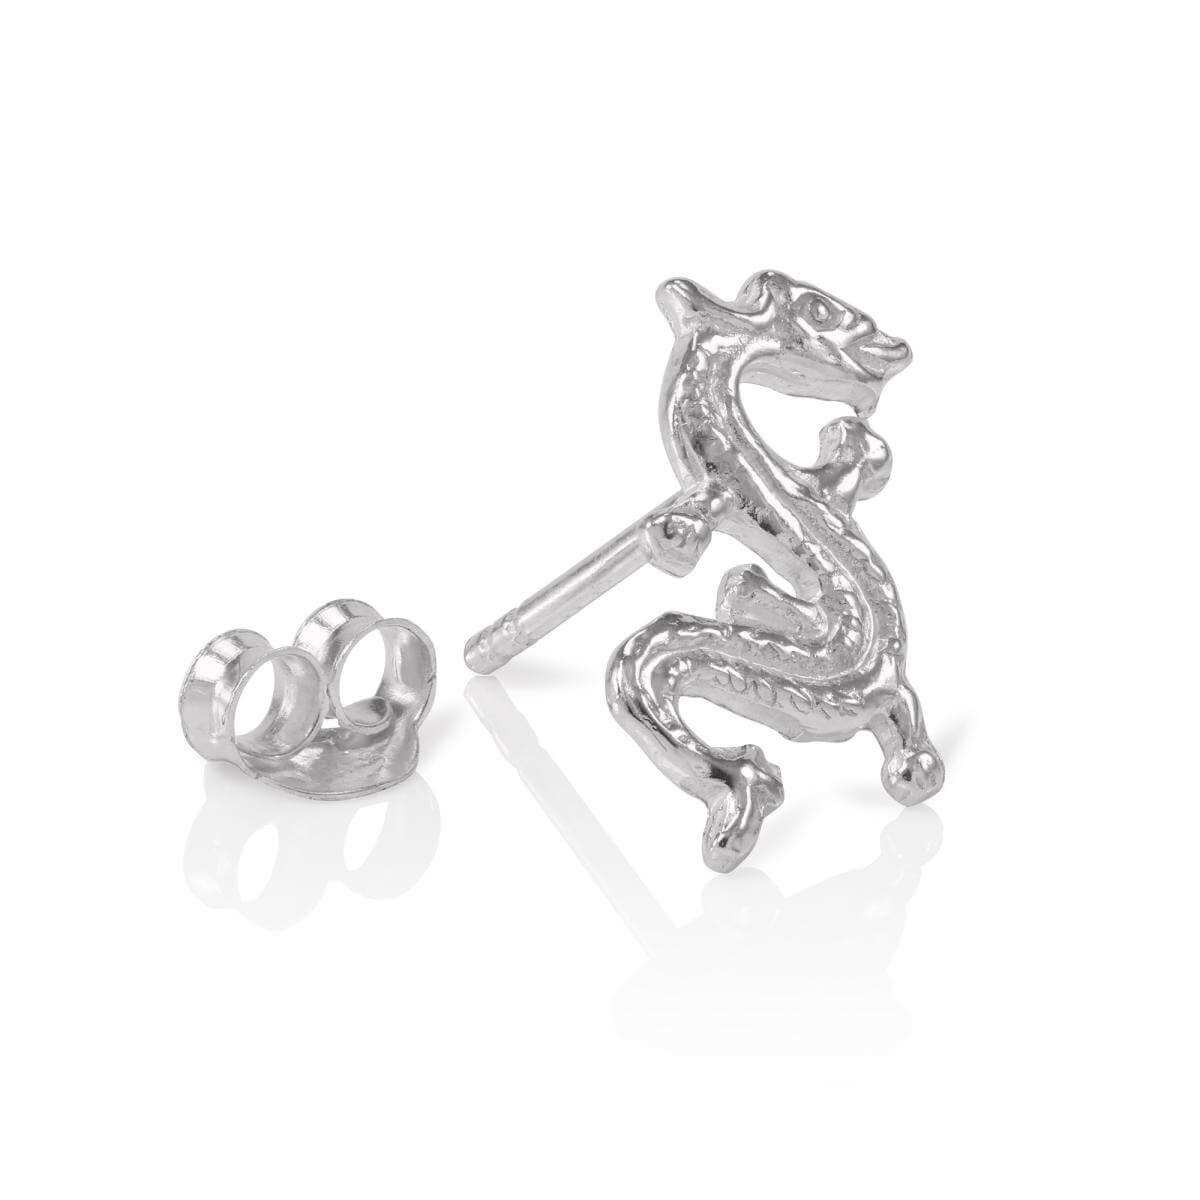 Sterling Silver Mens Dragon Single Ear Stud Earring